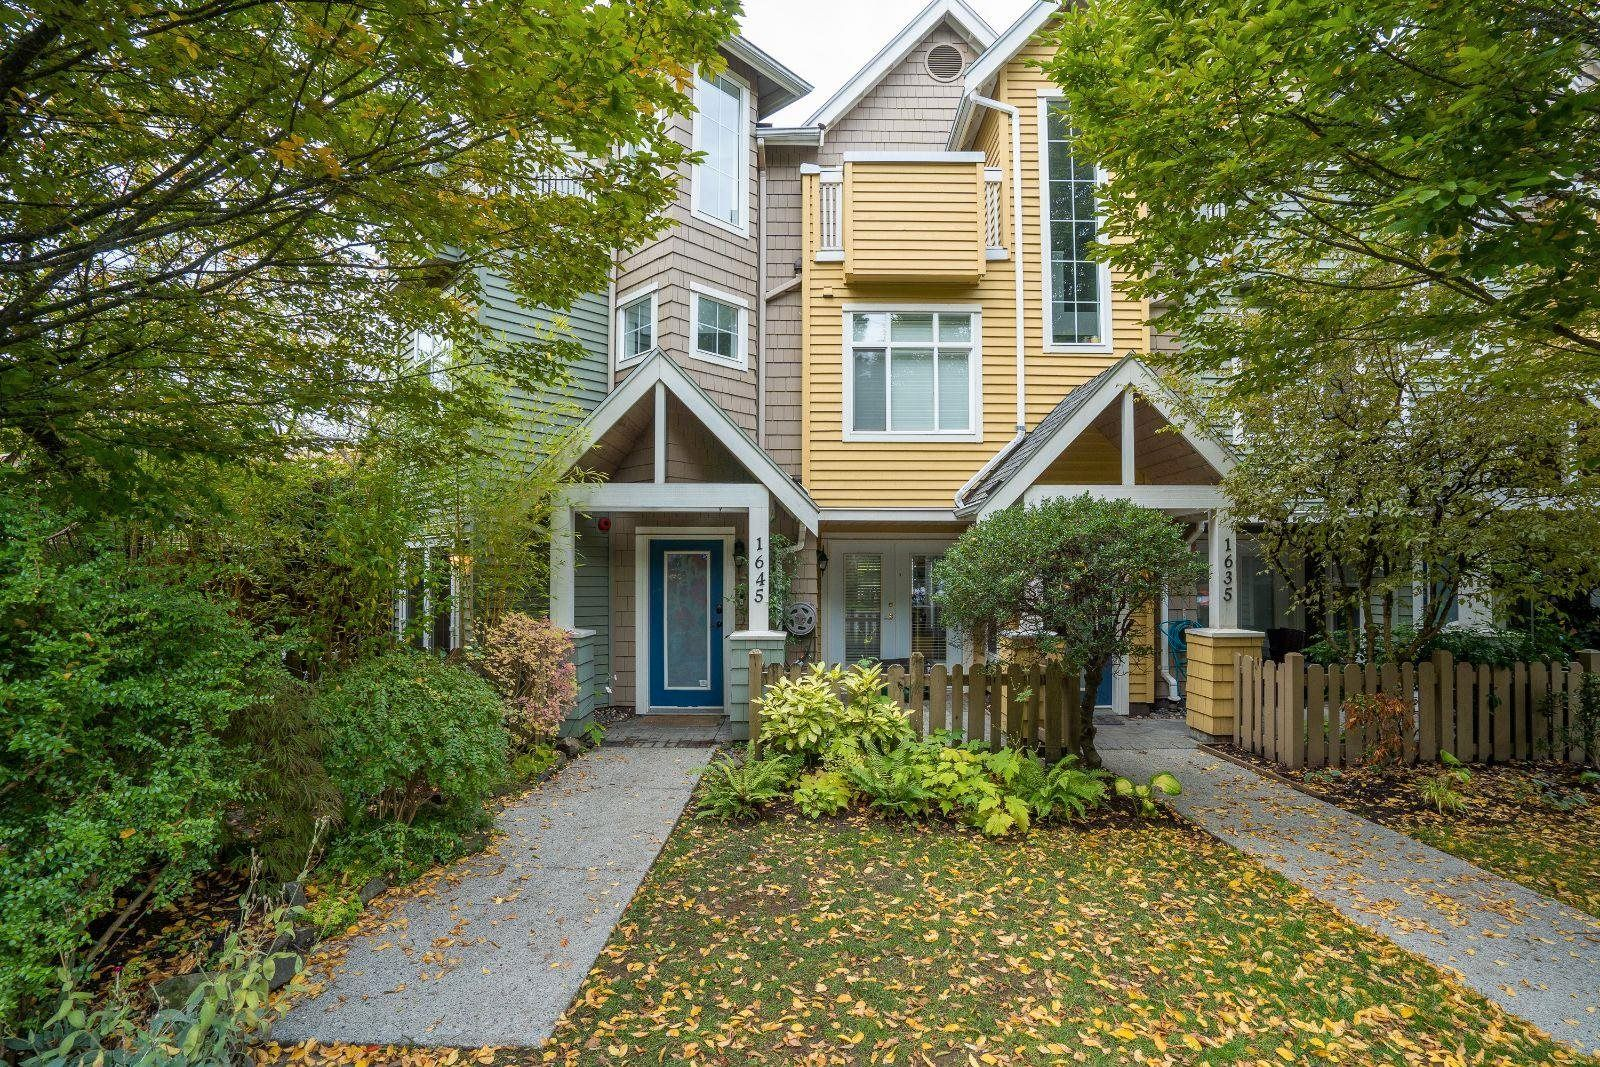 Main Photo: 1645 MCLEAN Drive in Vancouver: Grandview Woodland Townhouse for sale (Vancouver East)  : MLS®# R2623379